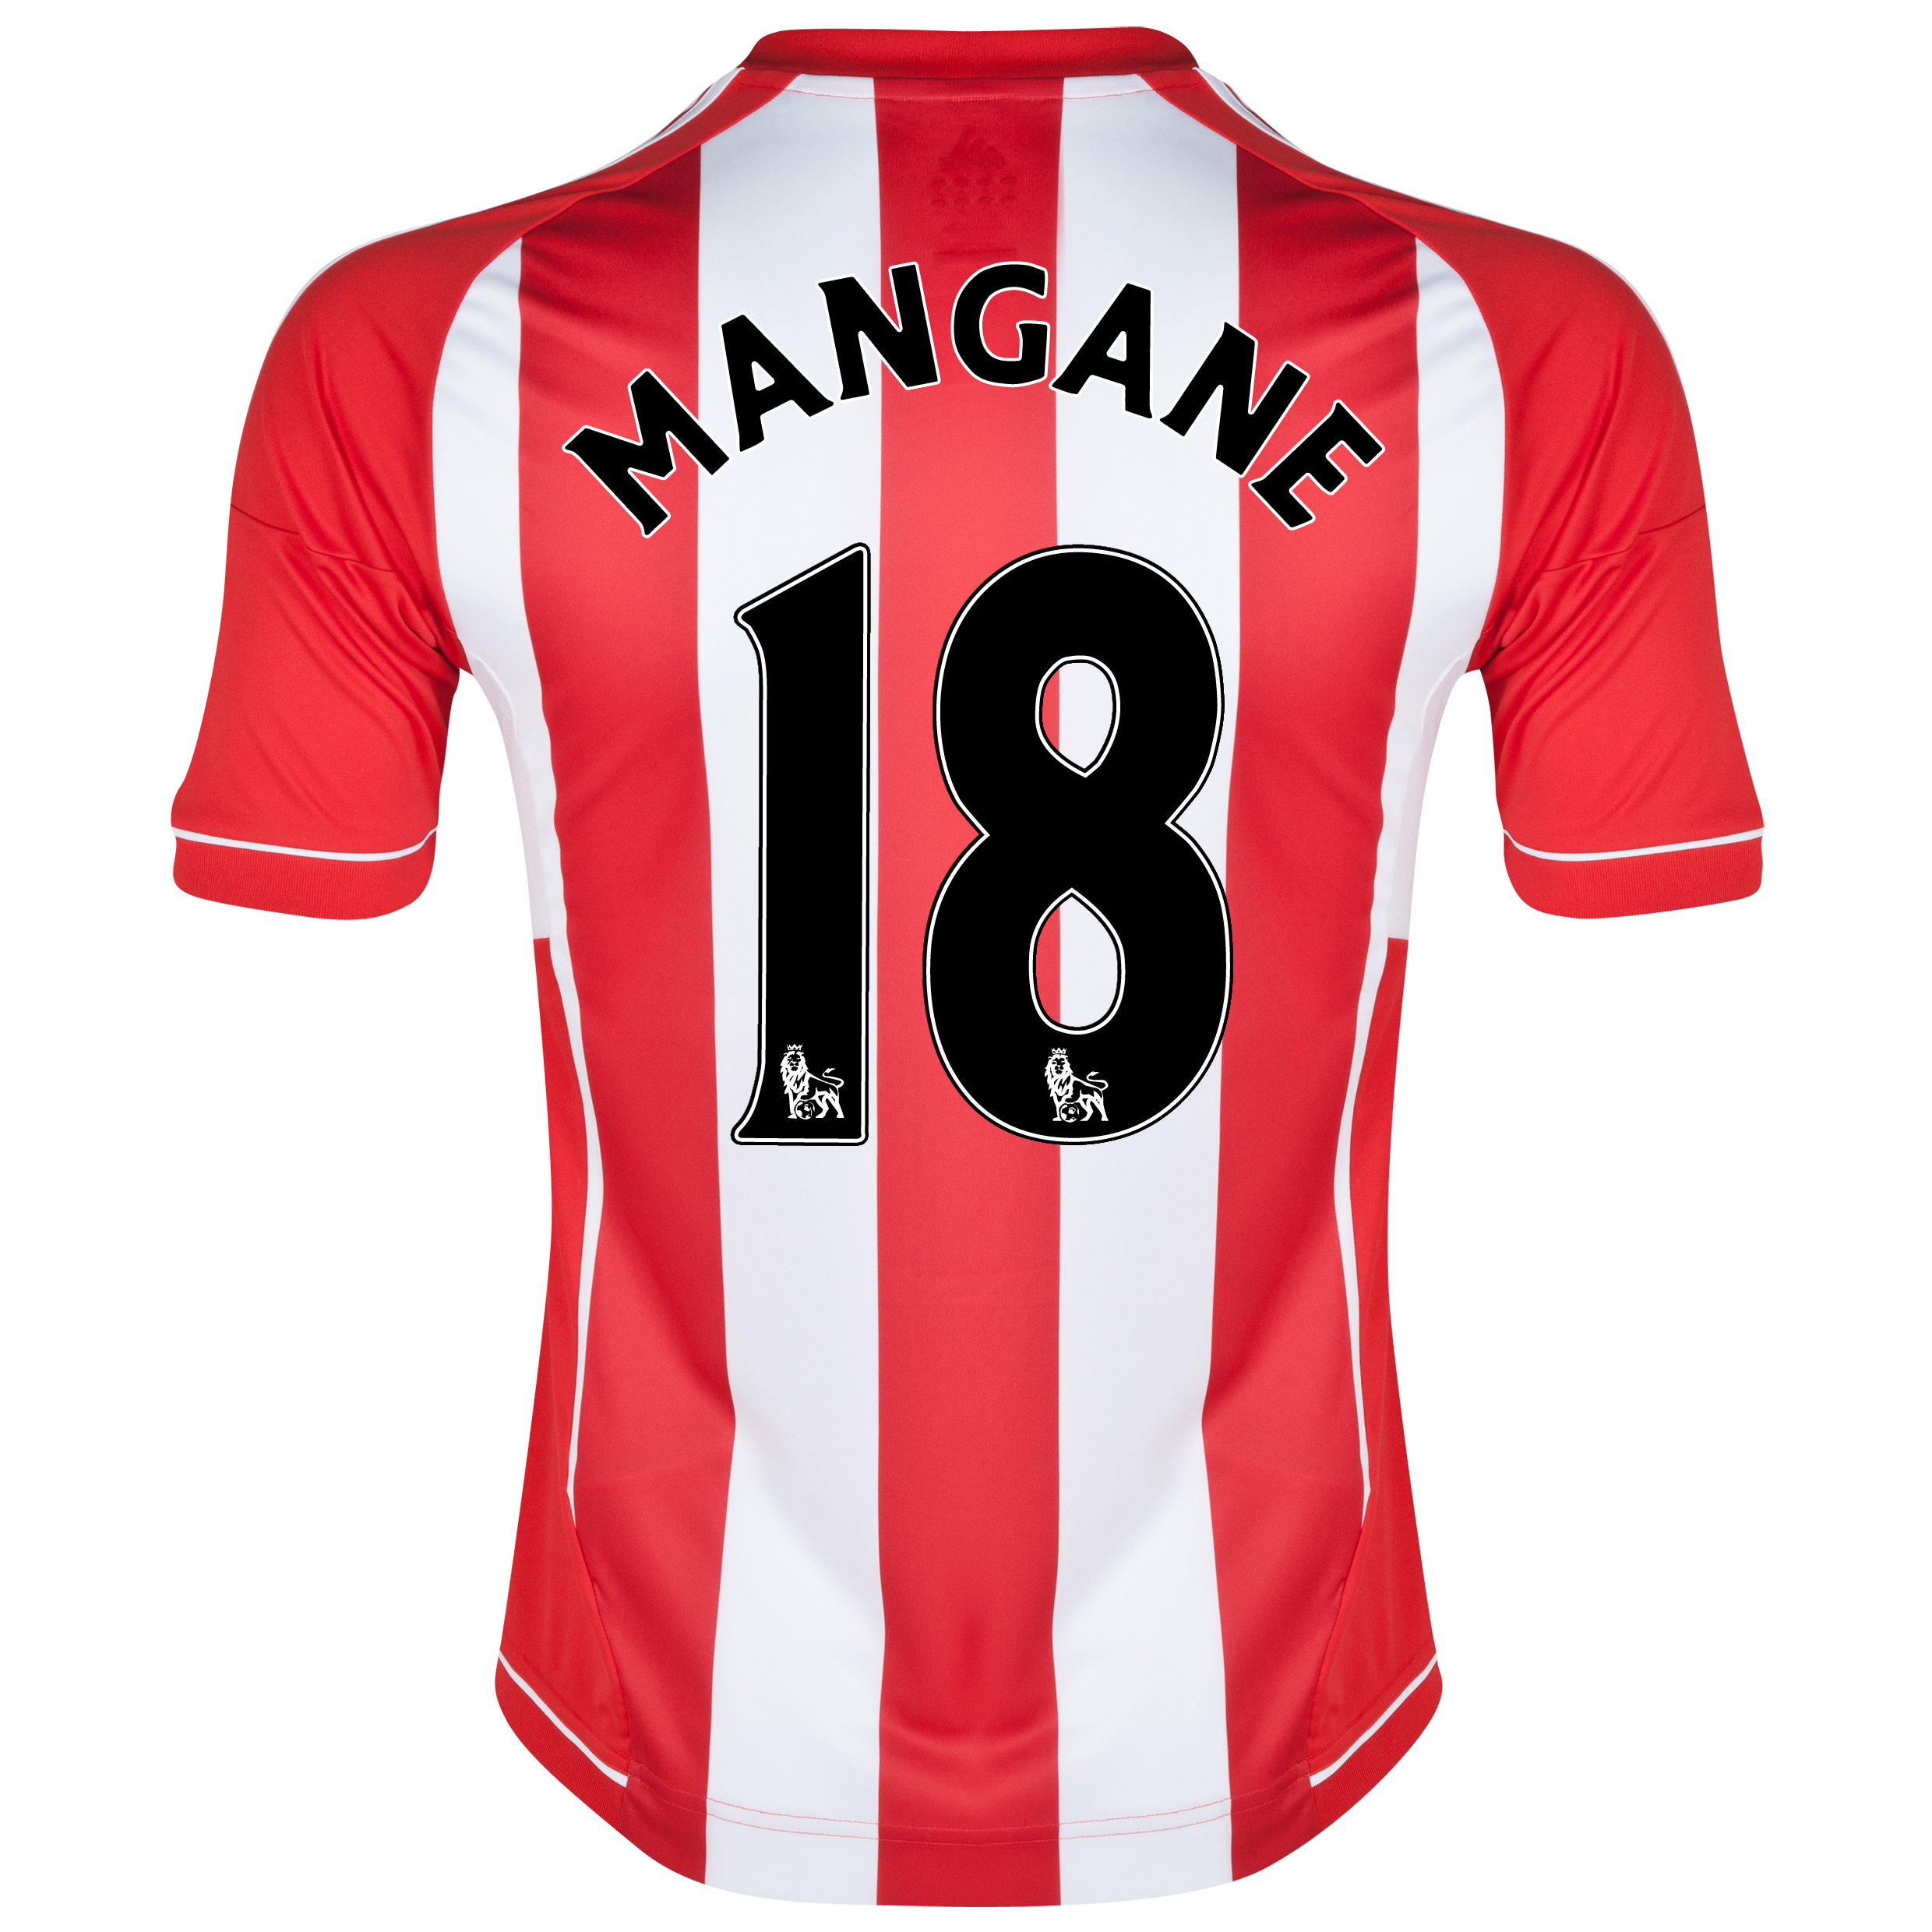 Sunderland Home Shirt 2012/13 with Mangane 18 printing